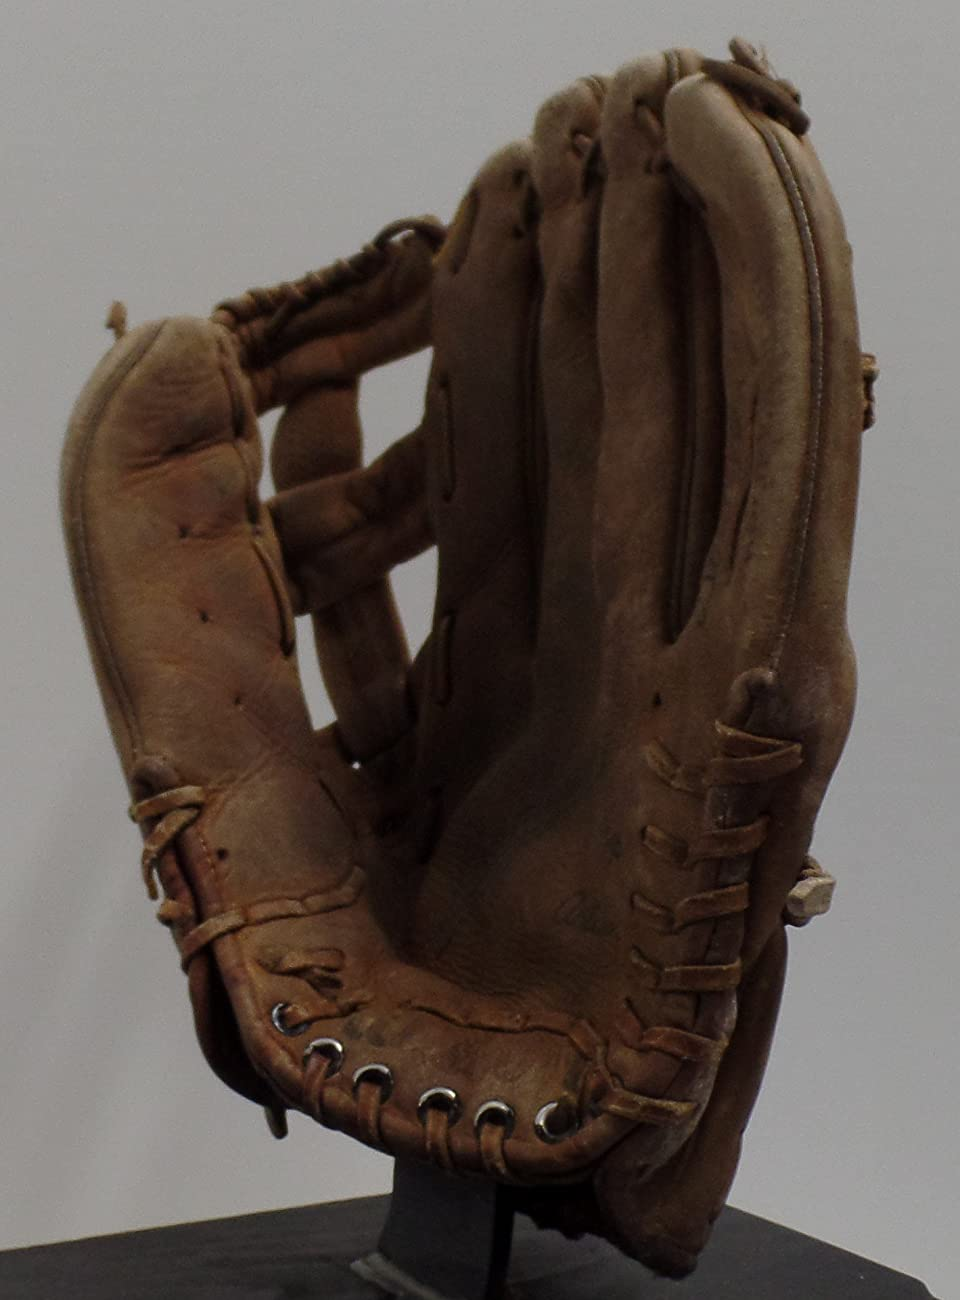 Vintage Bobby Bonds Pro Style Baseball Glove - Wilson Right Hand Thrower (Great for Display - Could Be Used Everyday) Free Shipping & Tracking 1